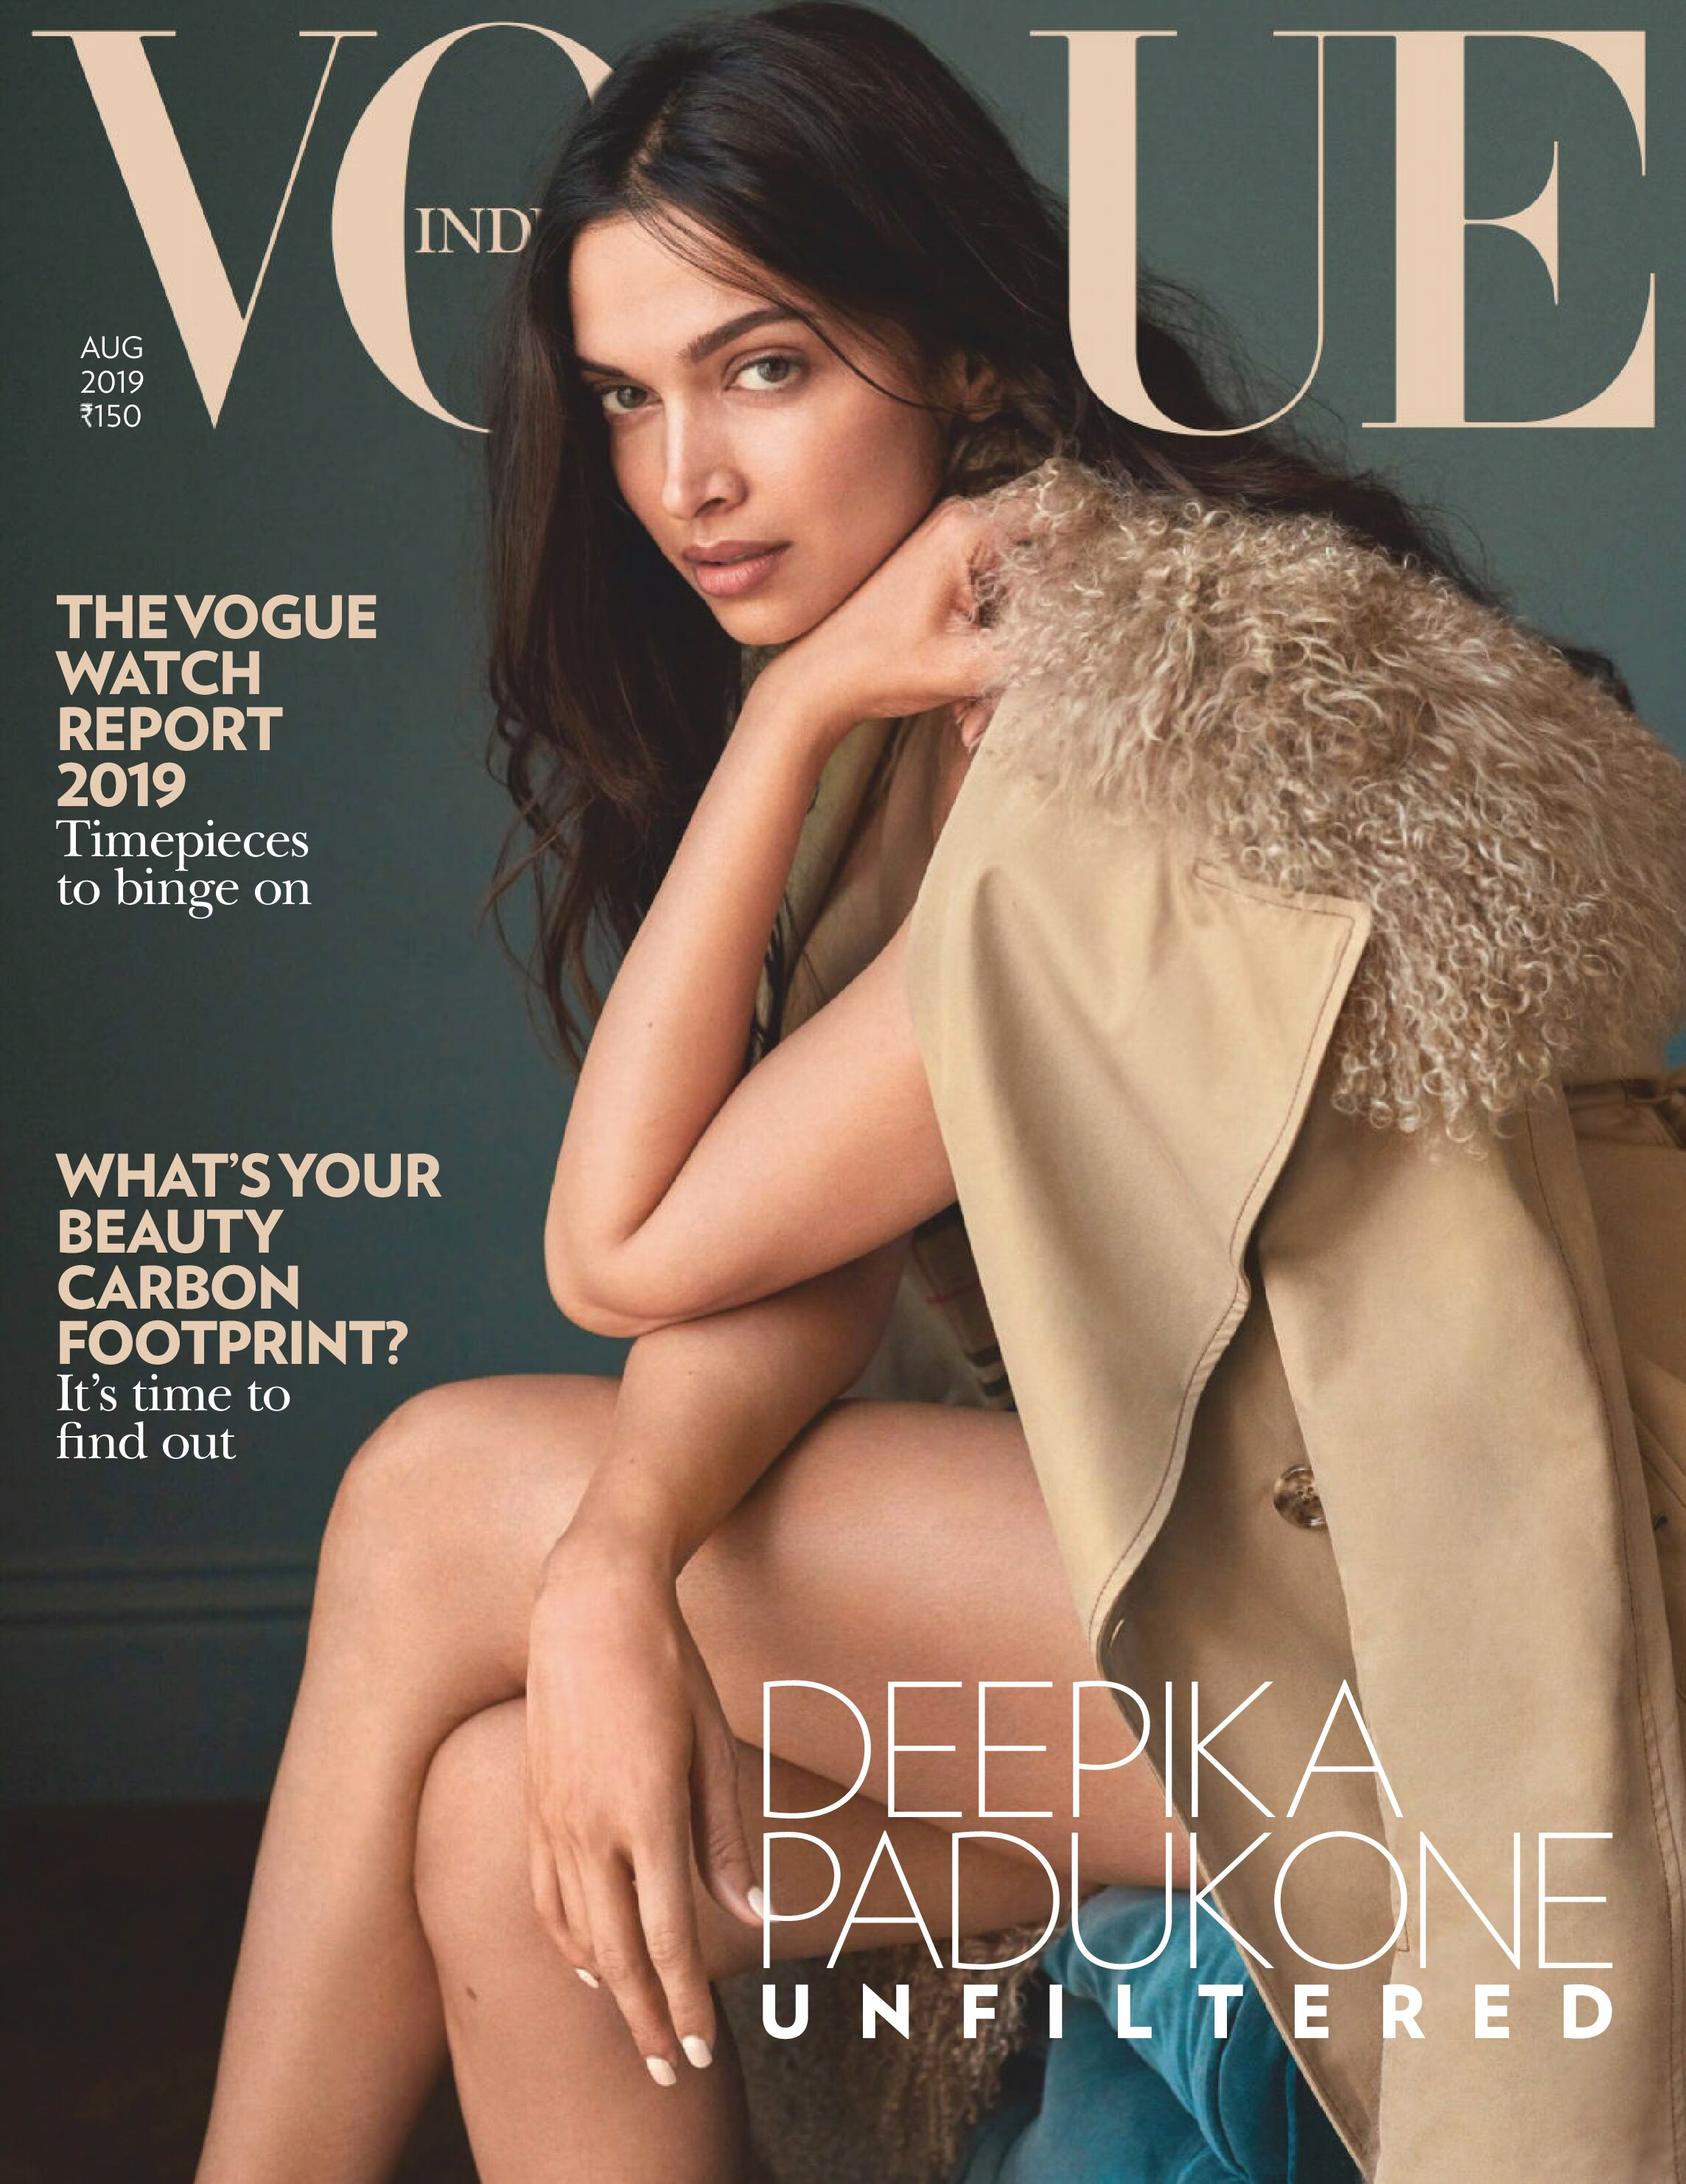 Deepika Padukone by Greg Swales for Vogue India August 2019 (1).jpg